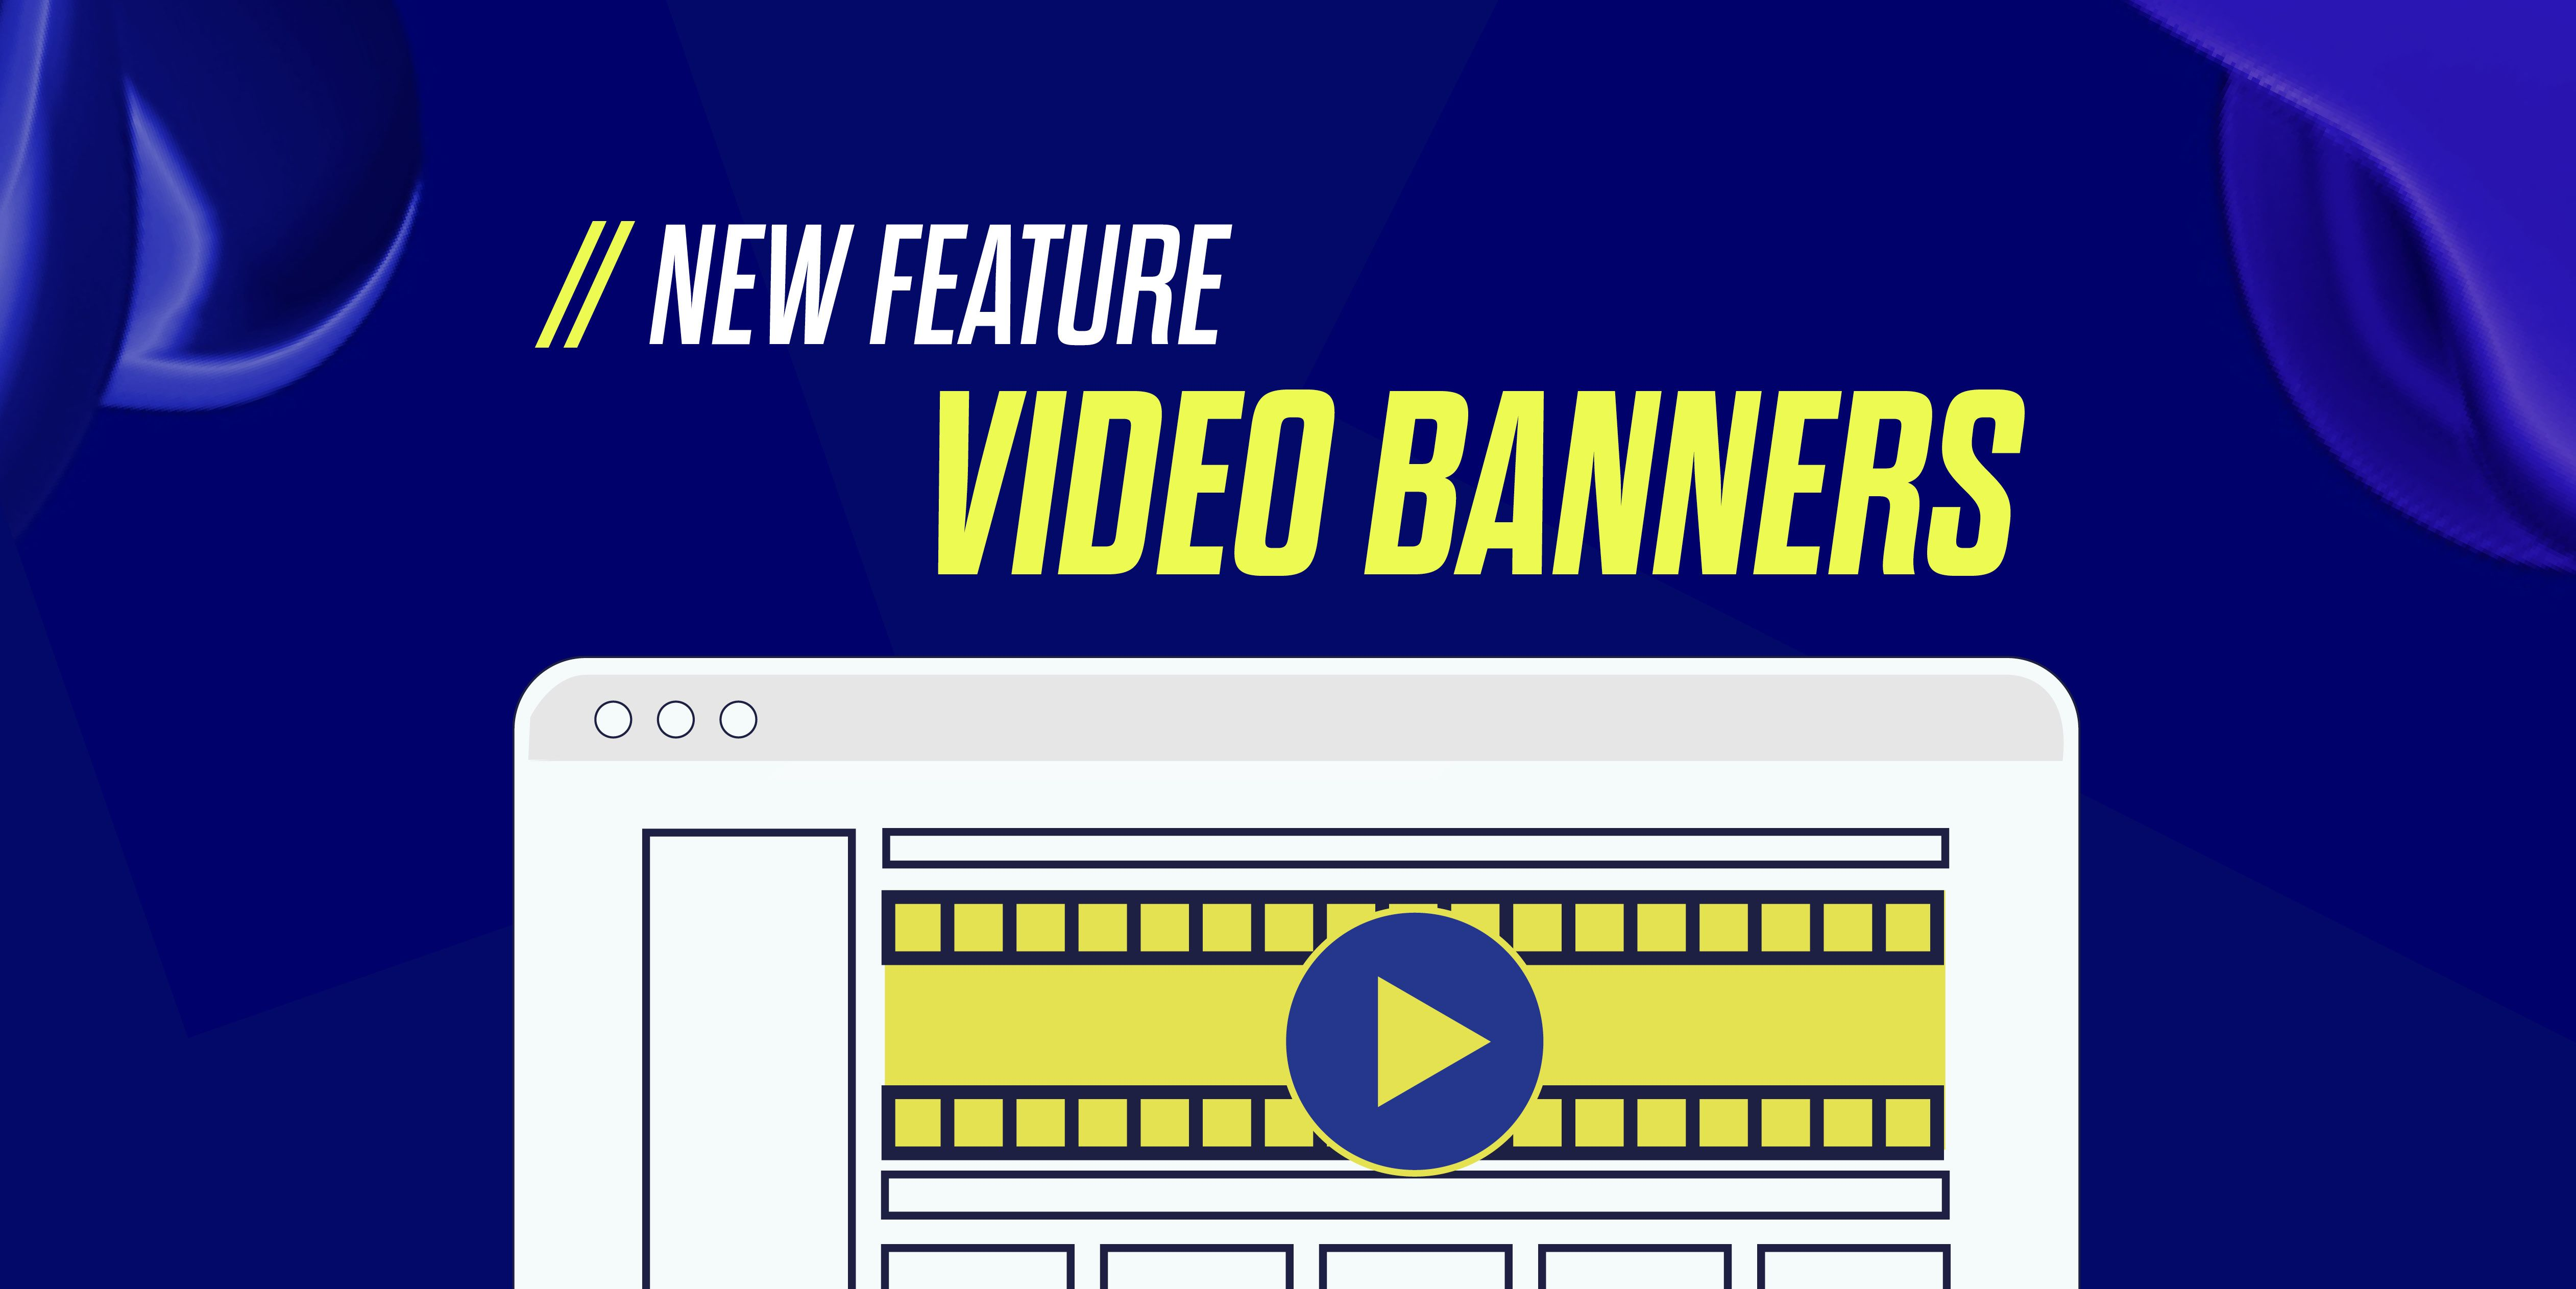 New feature Video banners